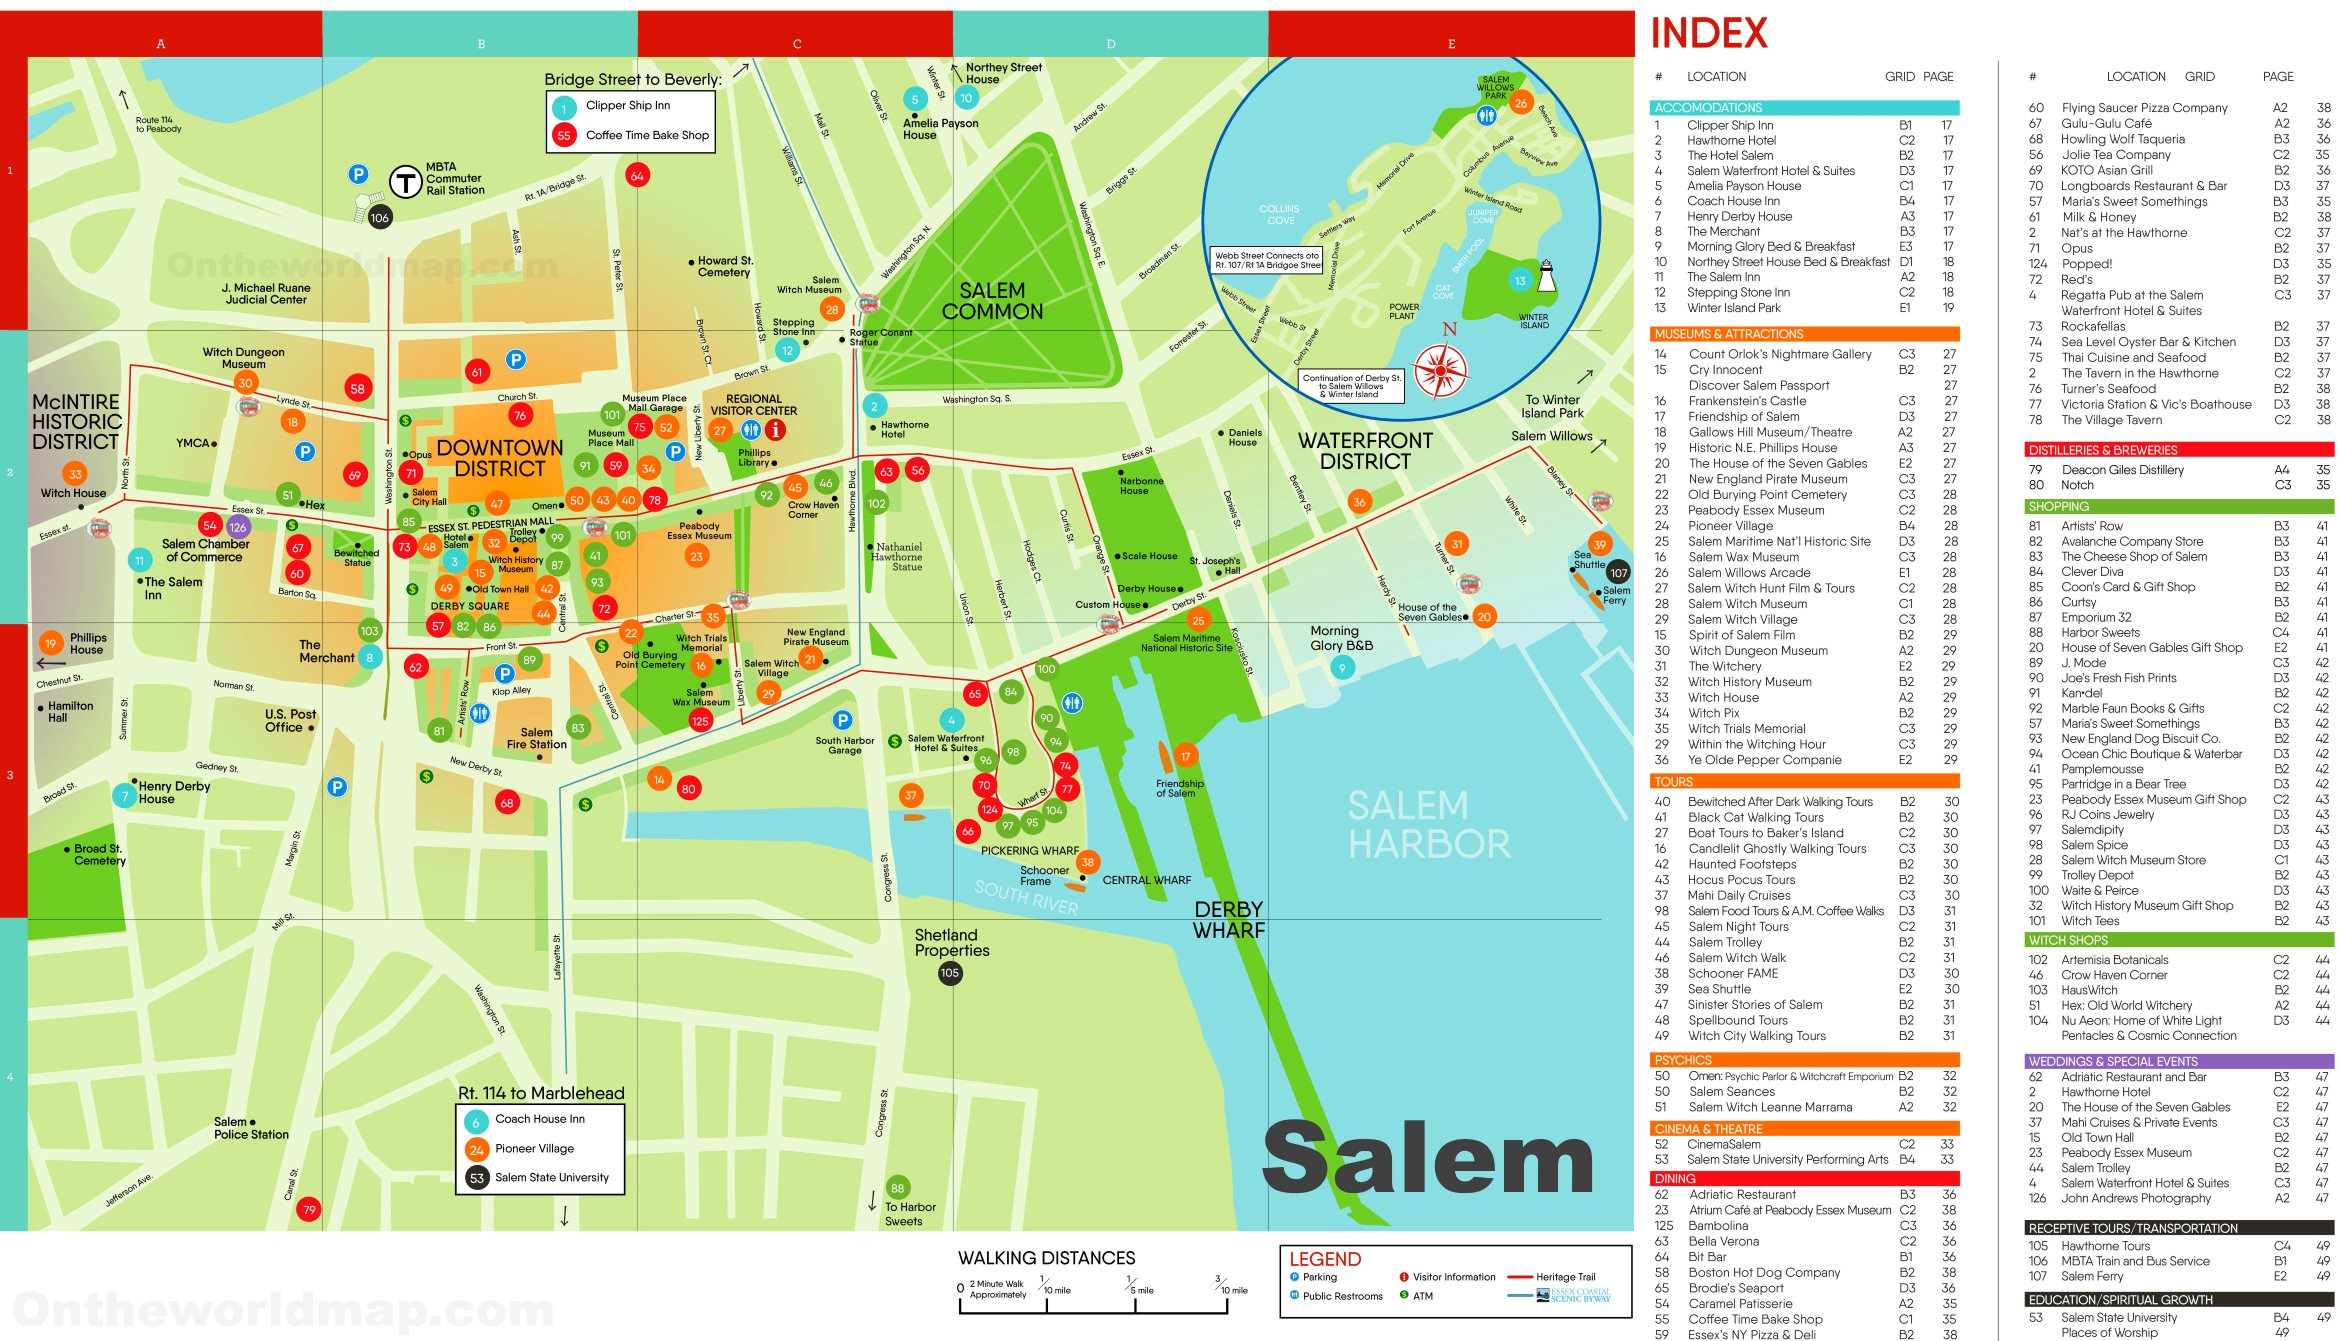 Salem hotels and sightseeings map on chattanooga usa map, annapolis usa map, denali usa map, pueblo usa map, willamette river usa map, allentown usa map, florence usa map, richmond usa map, ottawa usa map, spokane usa map, helena usa map, independence usa map, nashville usa map, boston usa map, nh usa map, zoo usa map, cheyenne usa map, wichita usa map, oklahoma city usa map, lexington usa map,